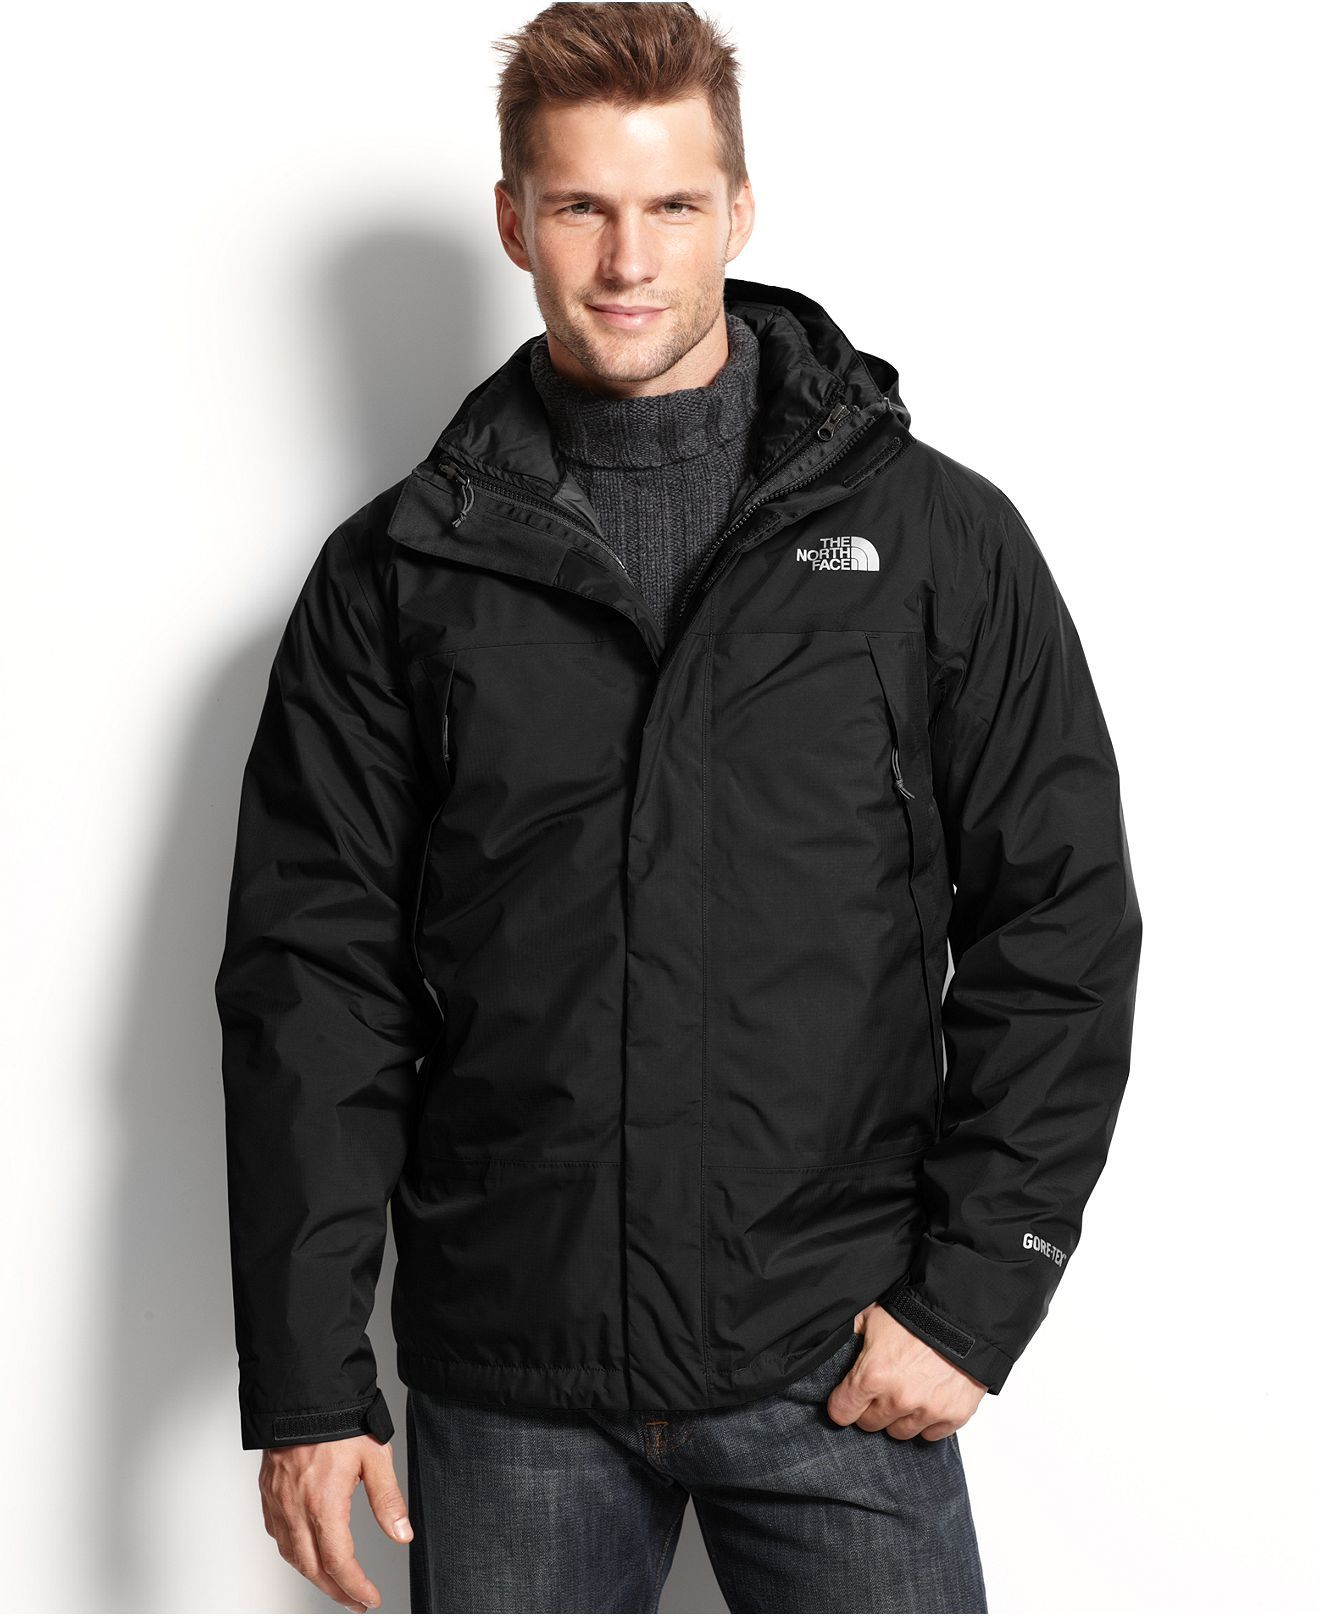 The North Face Jacket Mountain Light Waterproof Gore Tex Triclimate Coats Jackets Men Macy S North Face Jacket Men S Coats And Jackets Mens Jackets [ 1616 x 1320 Pixel ]